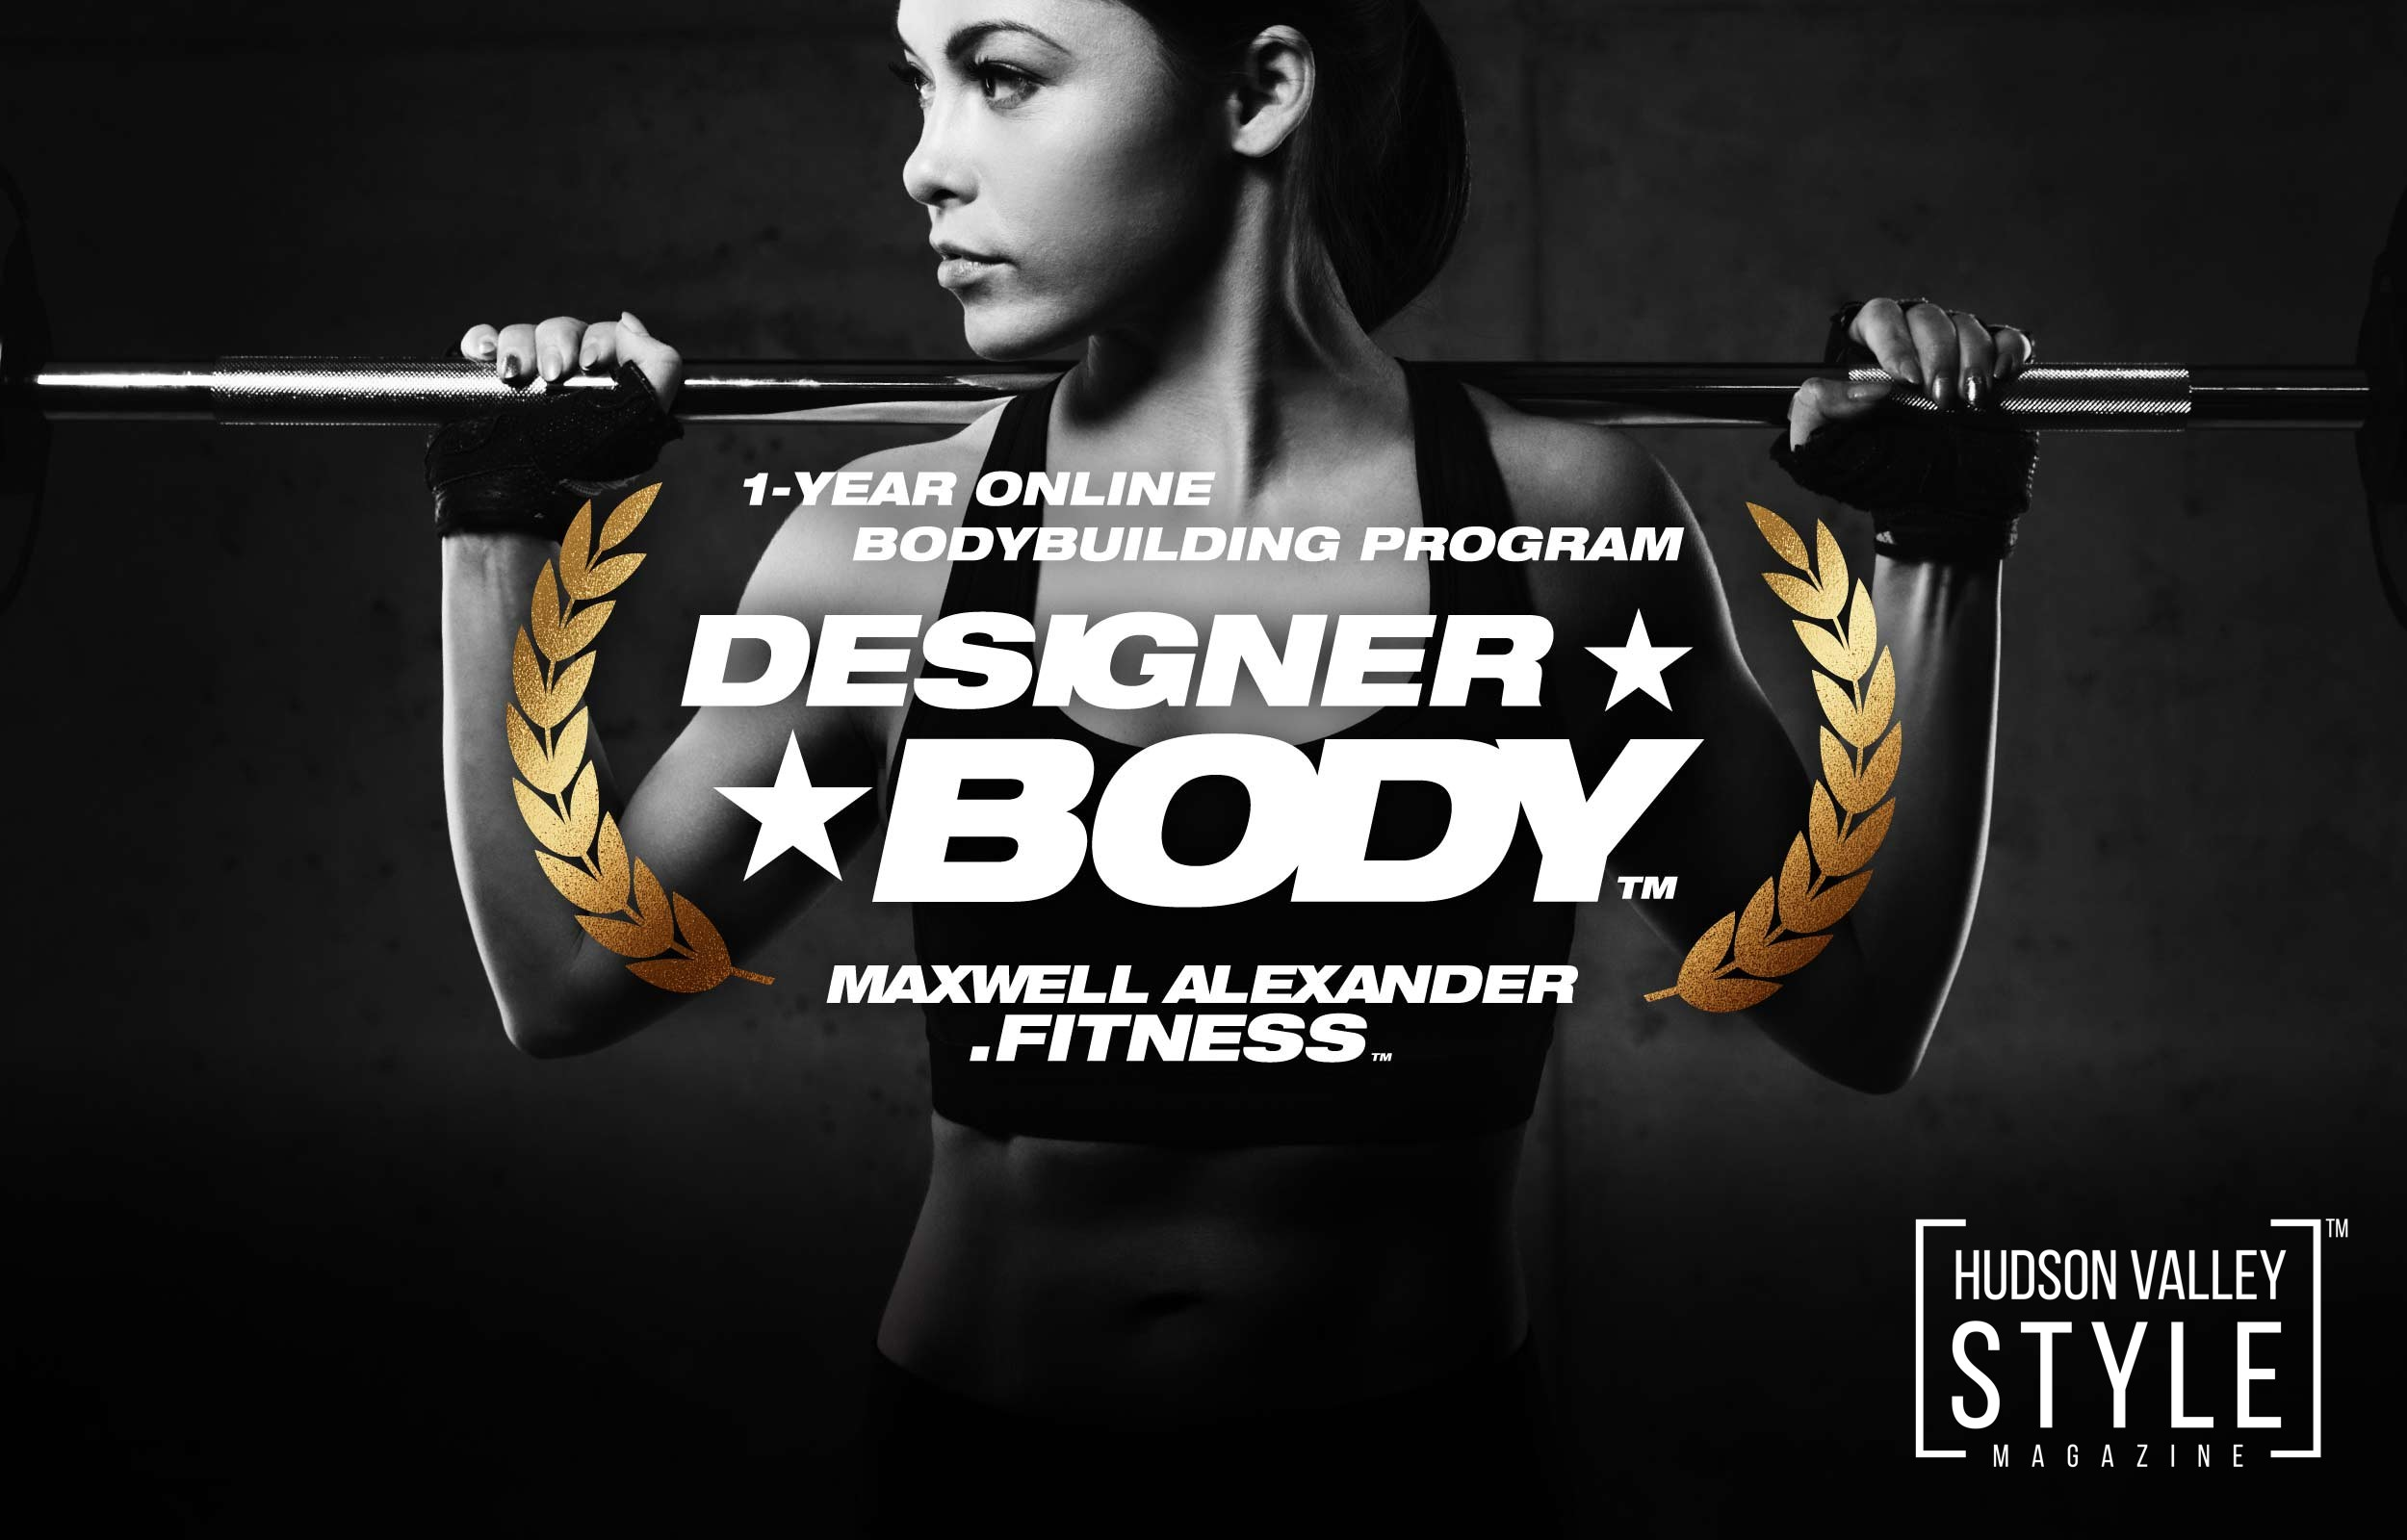 Designer Body by Maxwell Alexander - the best Online Fitness Trainer, Wellness, Nutrition and Bodybuilding Coach